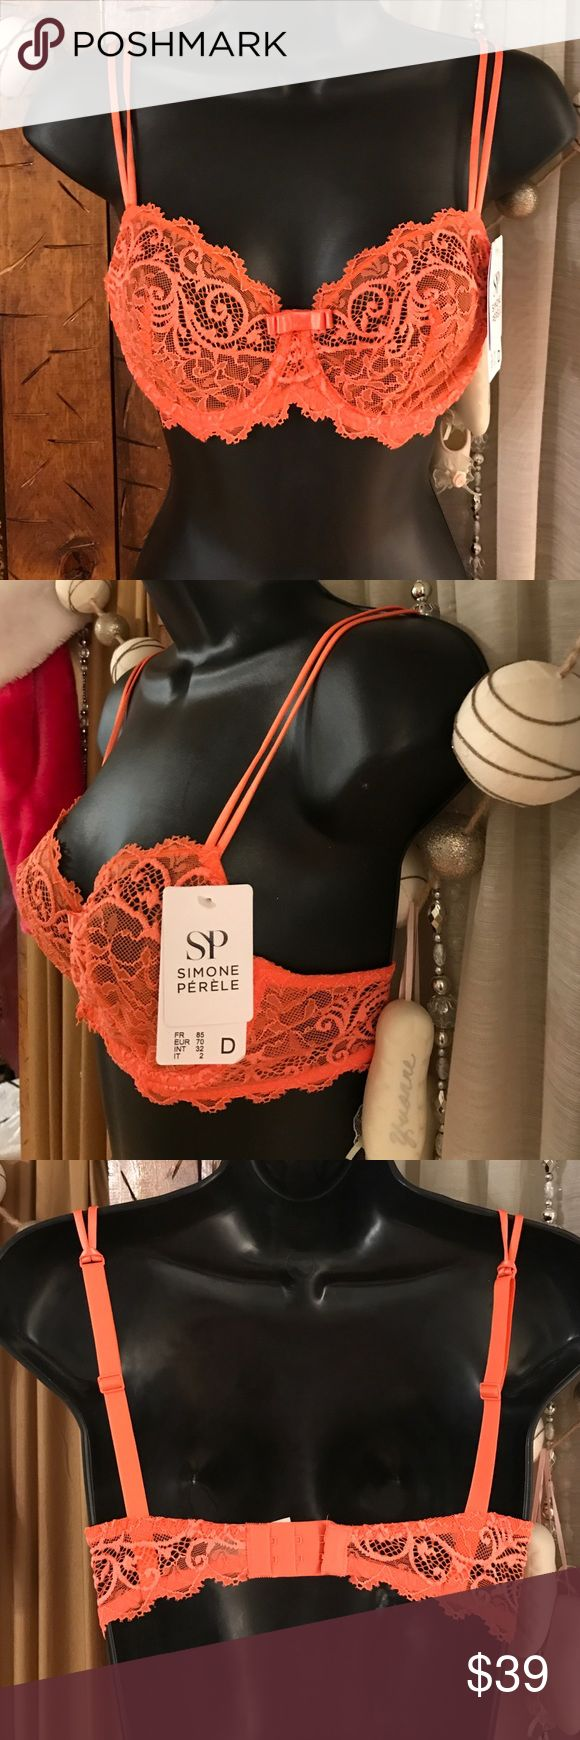 Simone perele orange lace underwire bra. BNWT. One of the higher end undergarments. Retails 89$ plus tax. So this is an incredible deal. Underwire to hold everything up. But still very comfortable. Double Spaghetti  straps and back thicker adjustable strap.  It's gorgeous and sexy that you can still wear under regular clothes. I love wearing these great colors under sheer tops. Be sexy and modest at the same time or surprise someone with your gorgeous undergarments, they will appreciate…